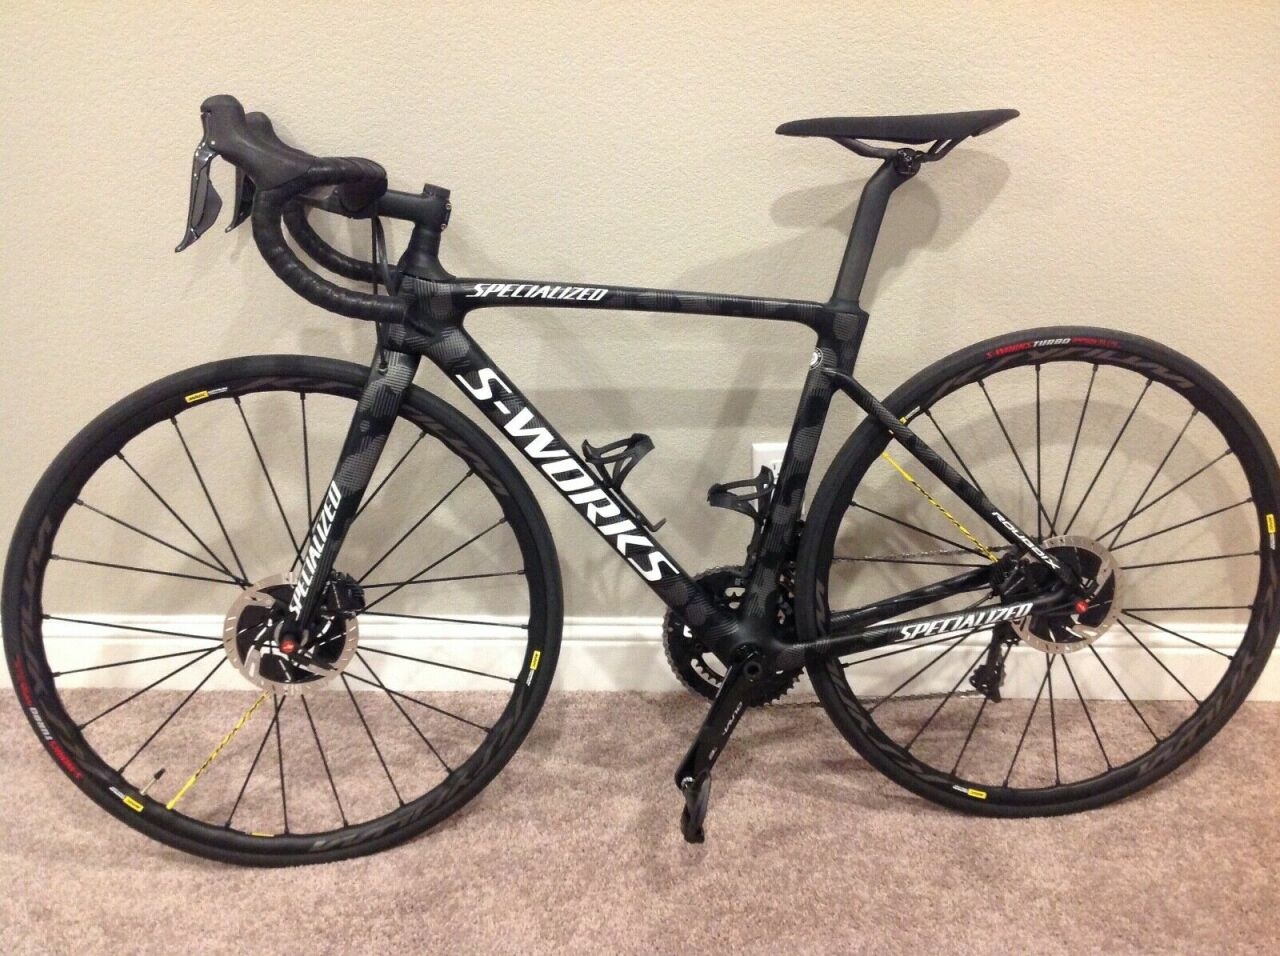 Specialized 2020 S-Works Roubaix Team Edition 53 C